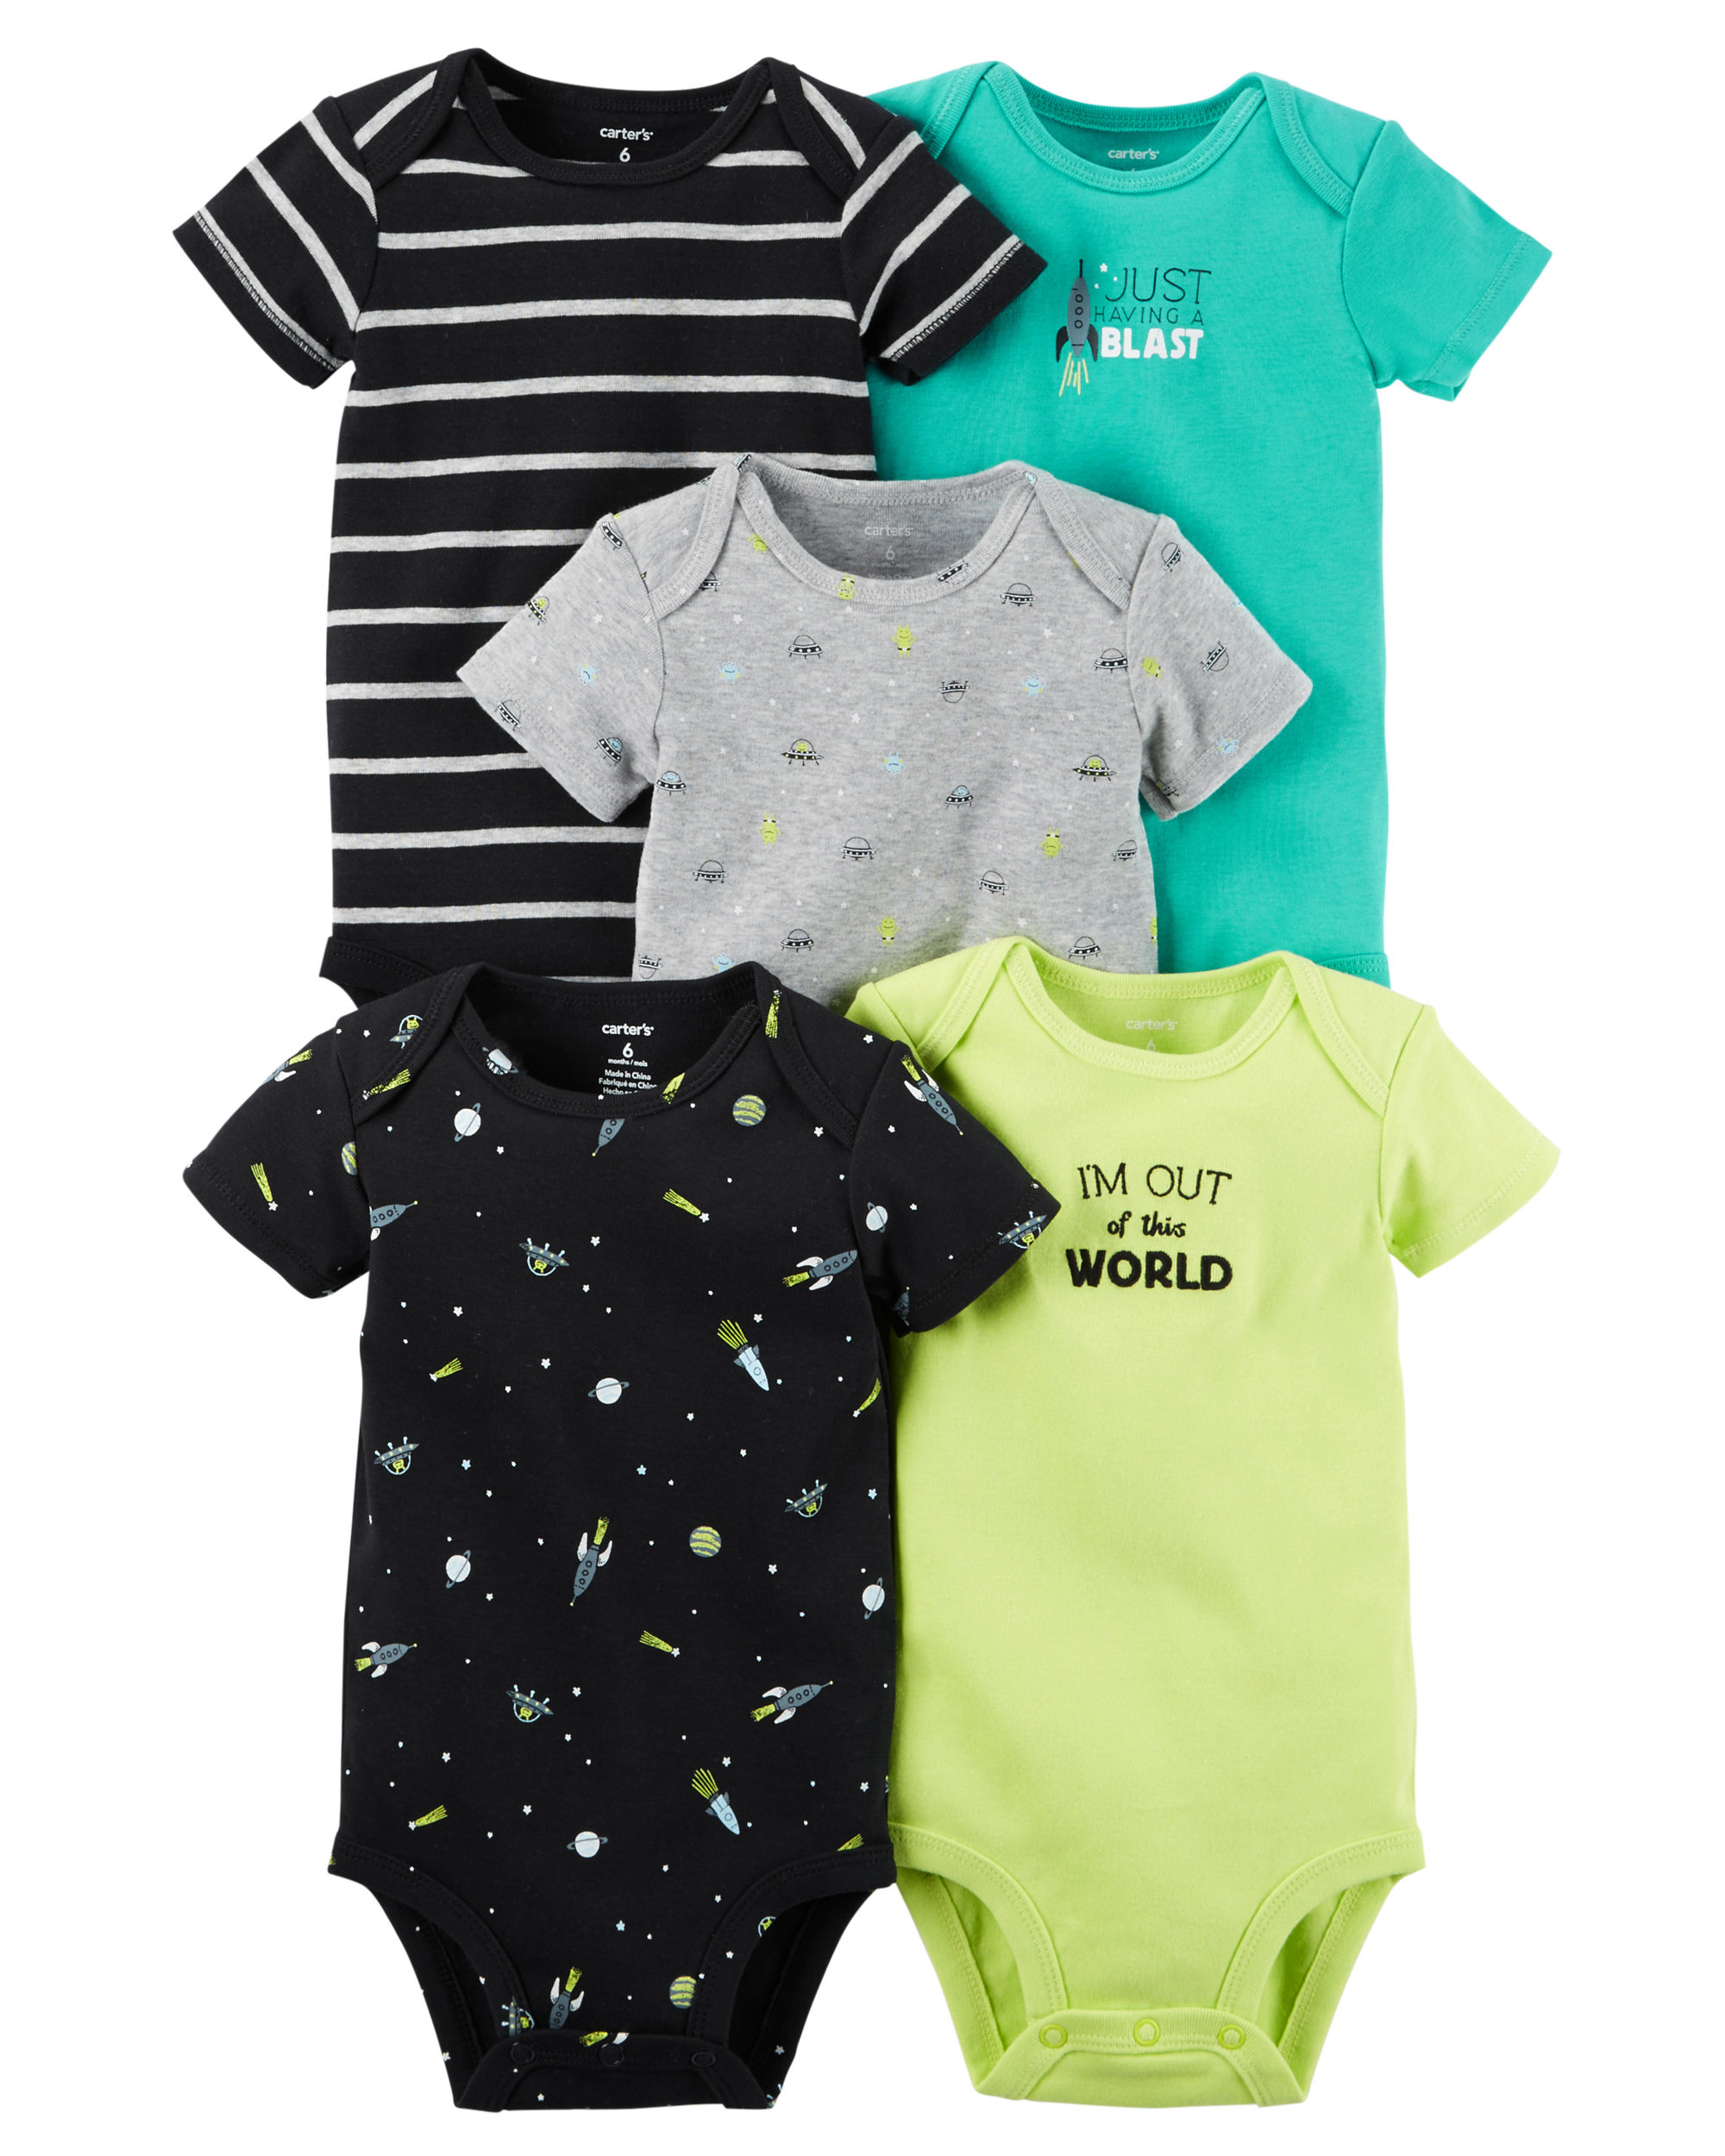 5-Pack Short-Sleeve Bodysuits (Space Theme) - $15.60